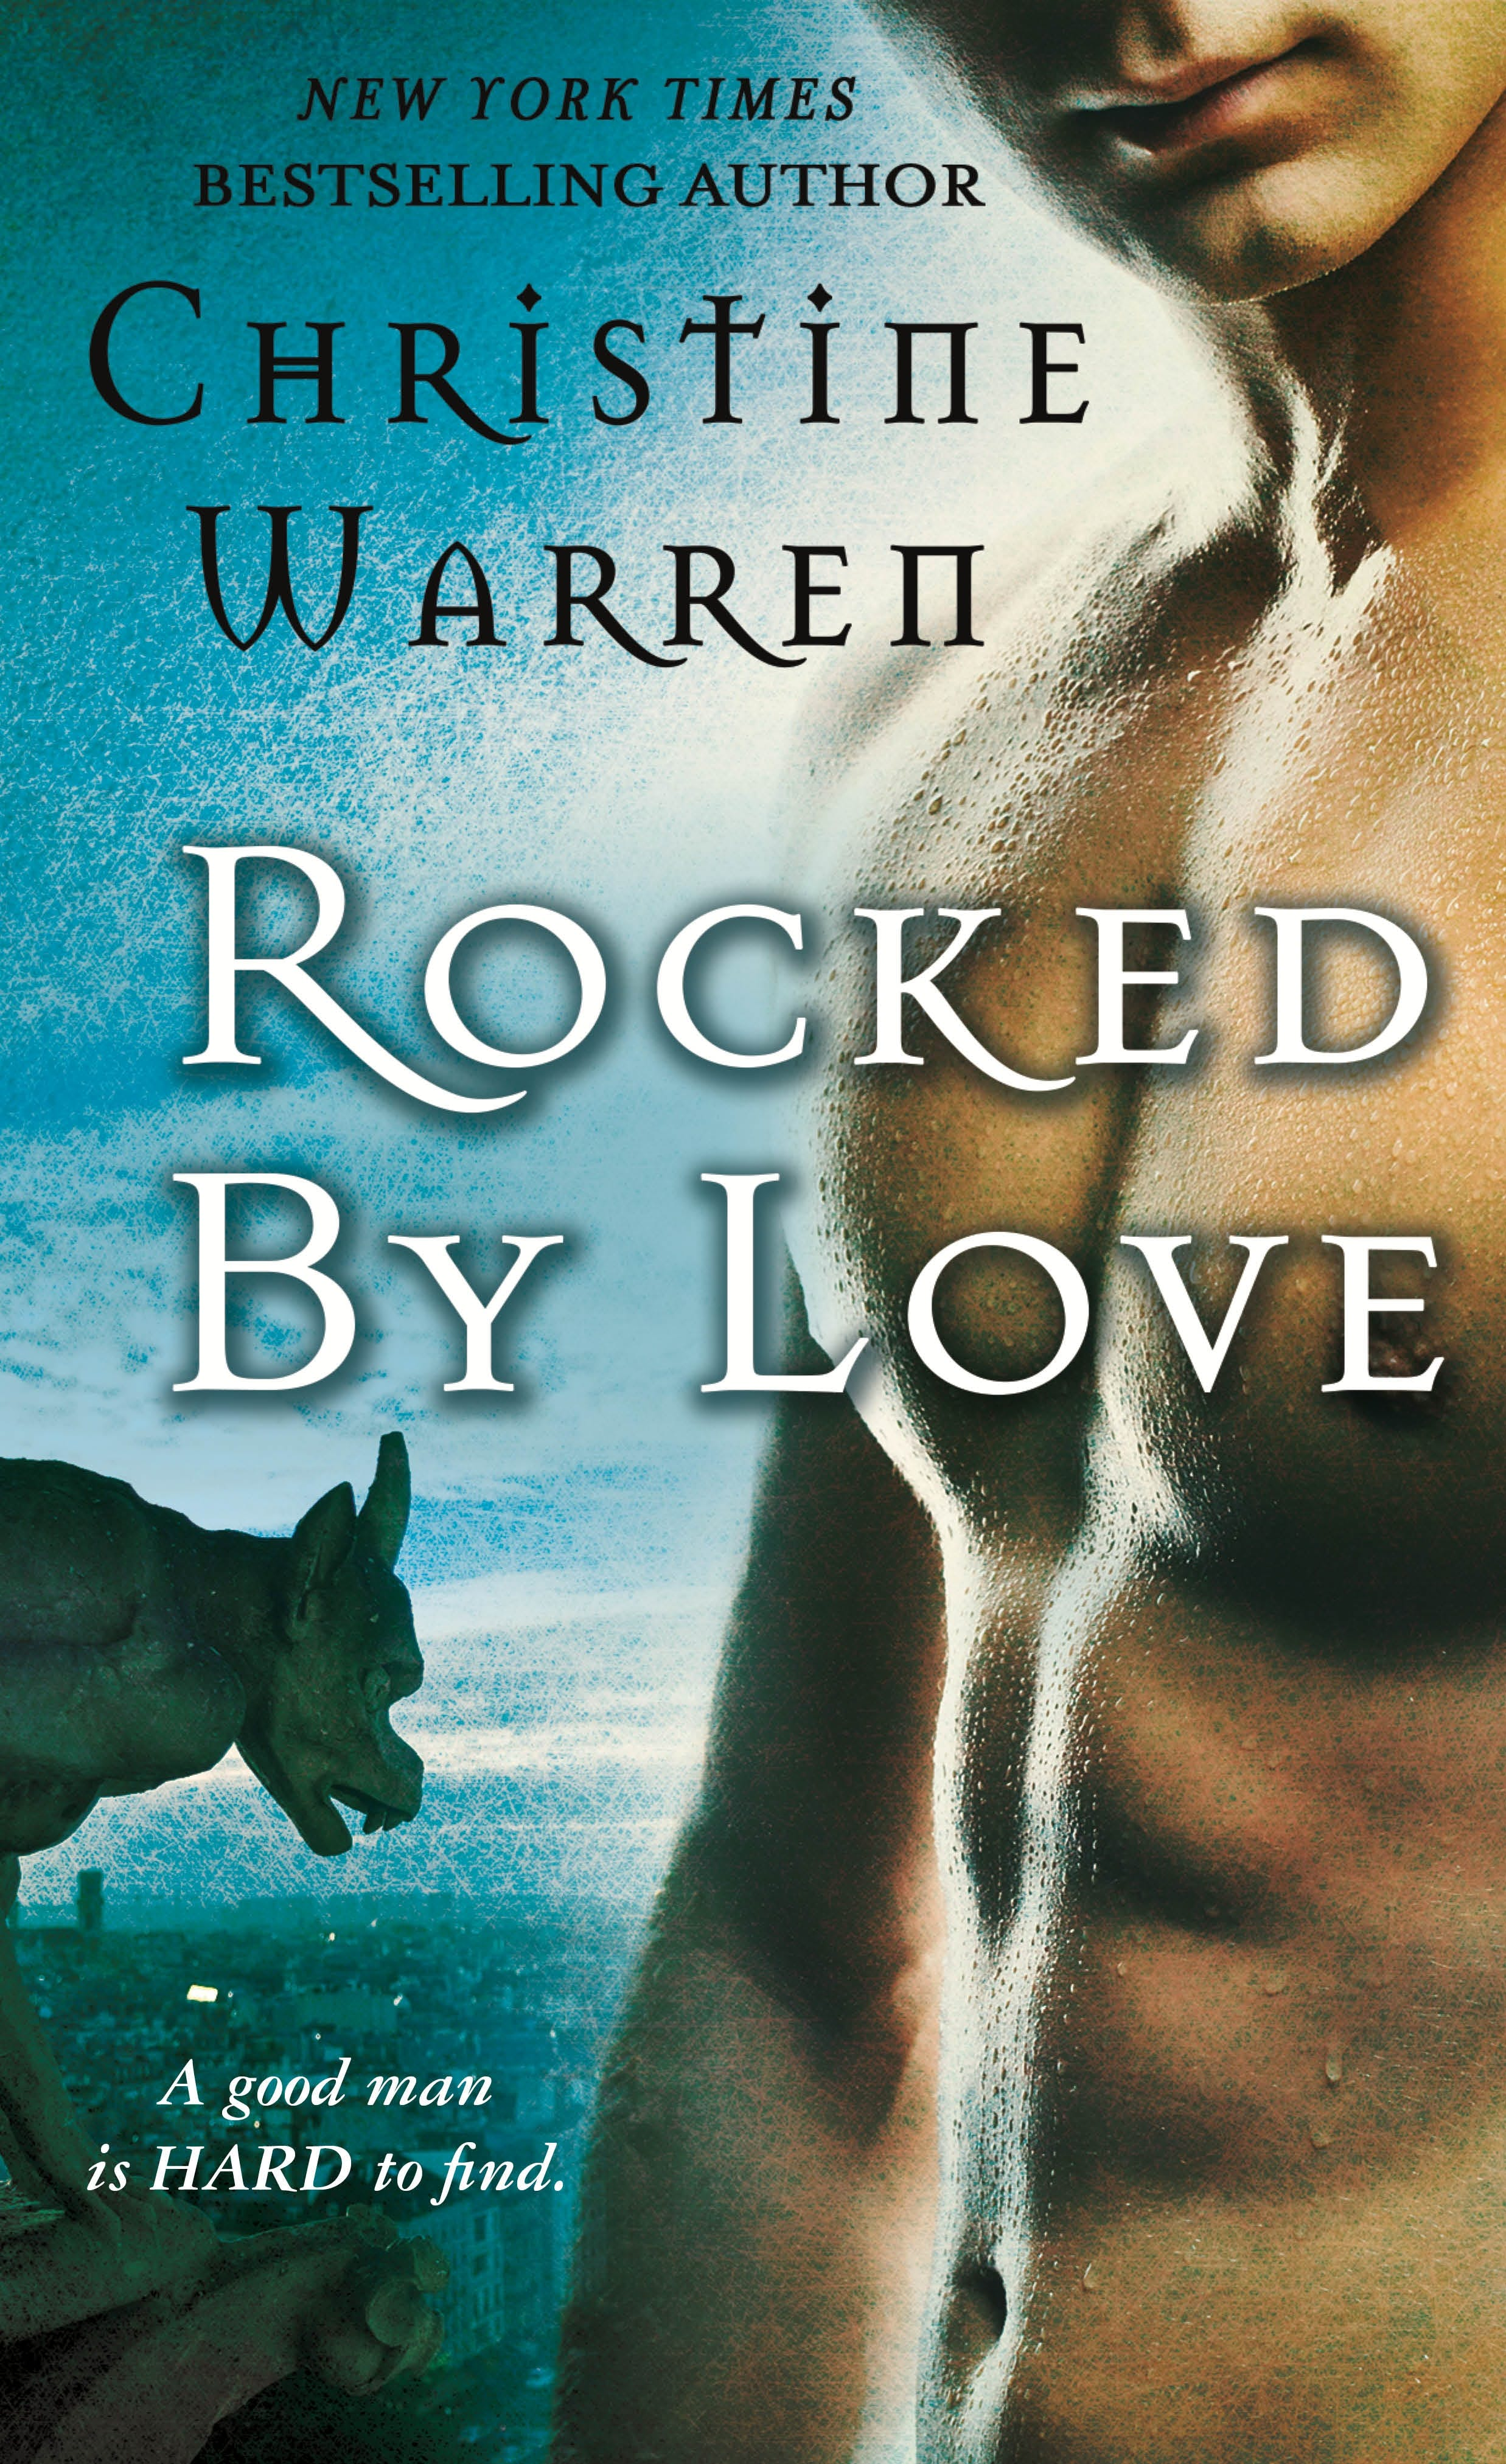 Image of Rocked by Love